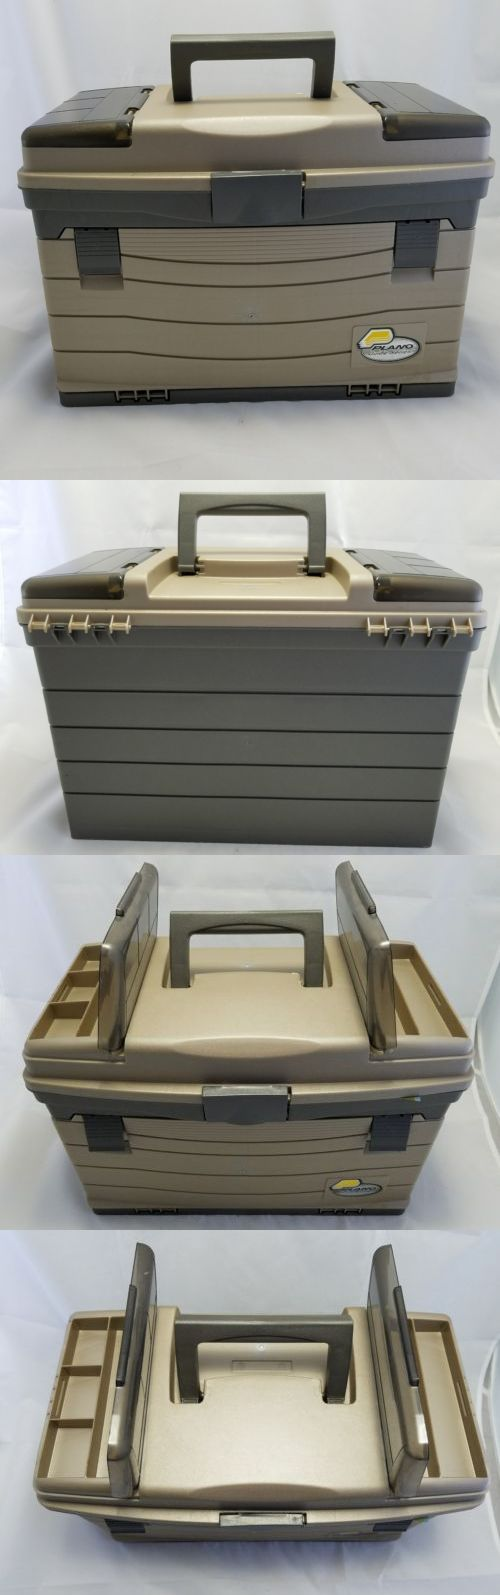 Tackle Boxes and Bags 22696: New Plano 4-Drawer Tackle Box With Top Access Fishing Storage Outdoor Model 757G -> BUY IT NOW ONLY: $47.45 on eBay!